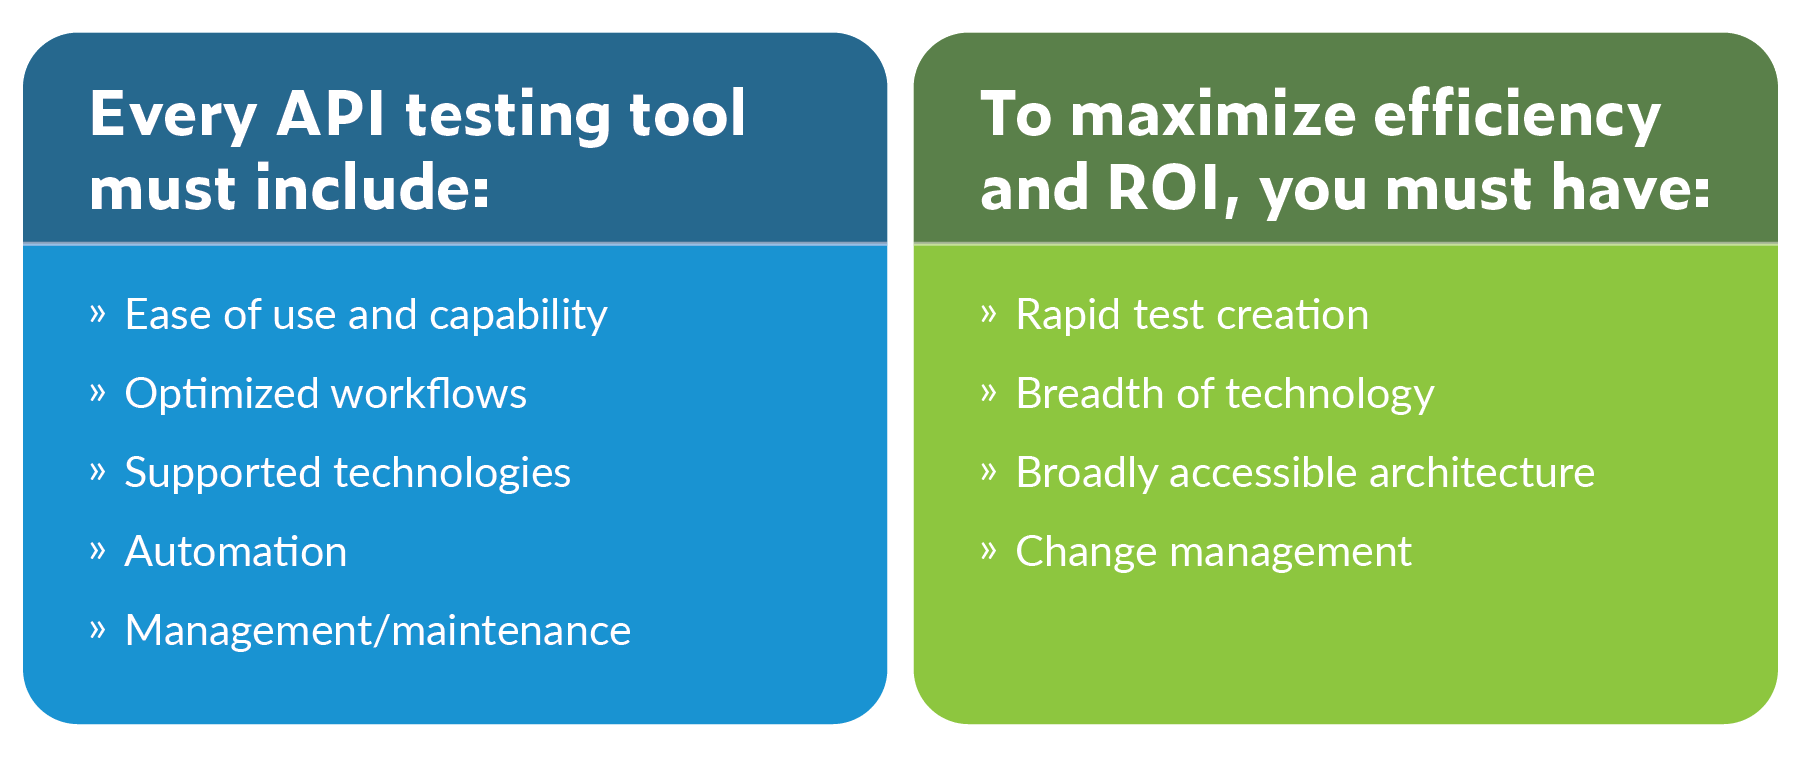 Side by side checklists of API testing tool and ROI efficiency must haves